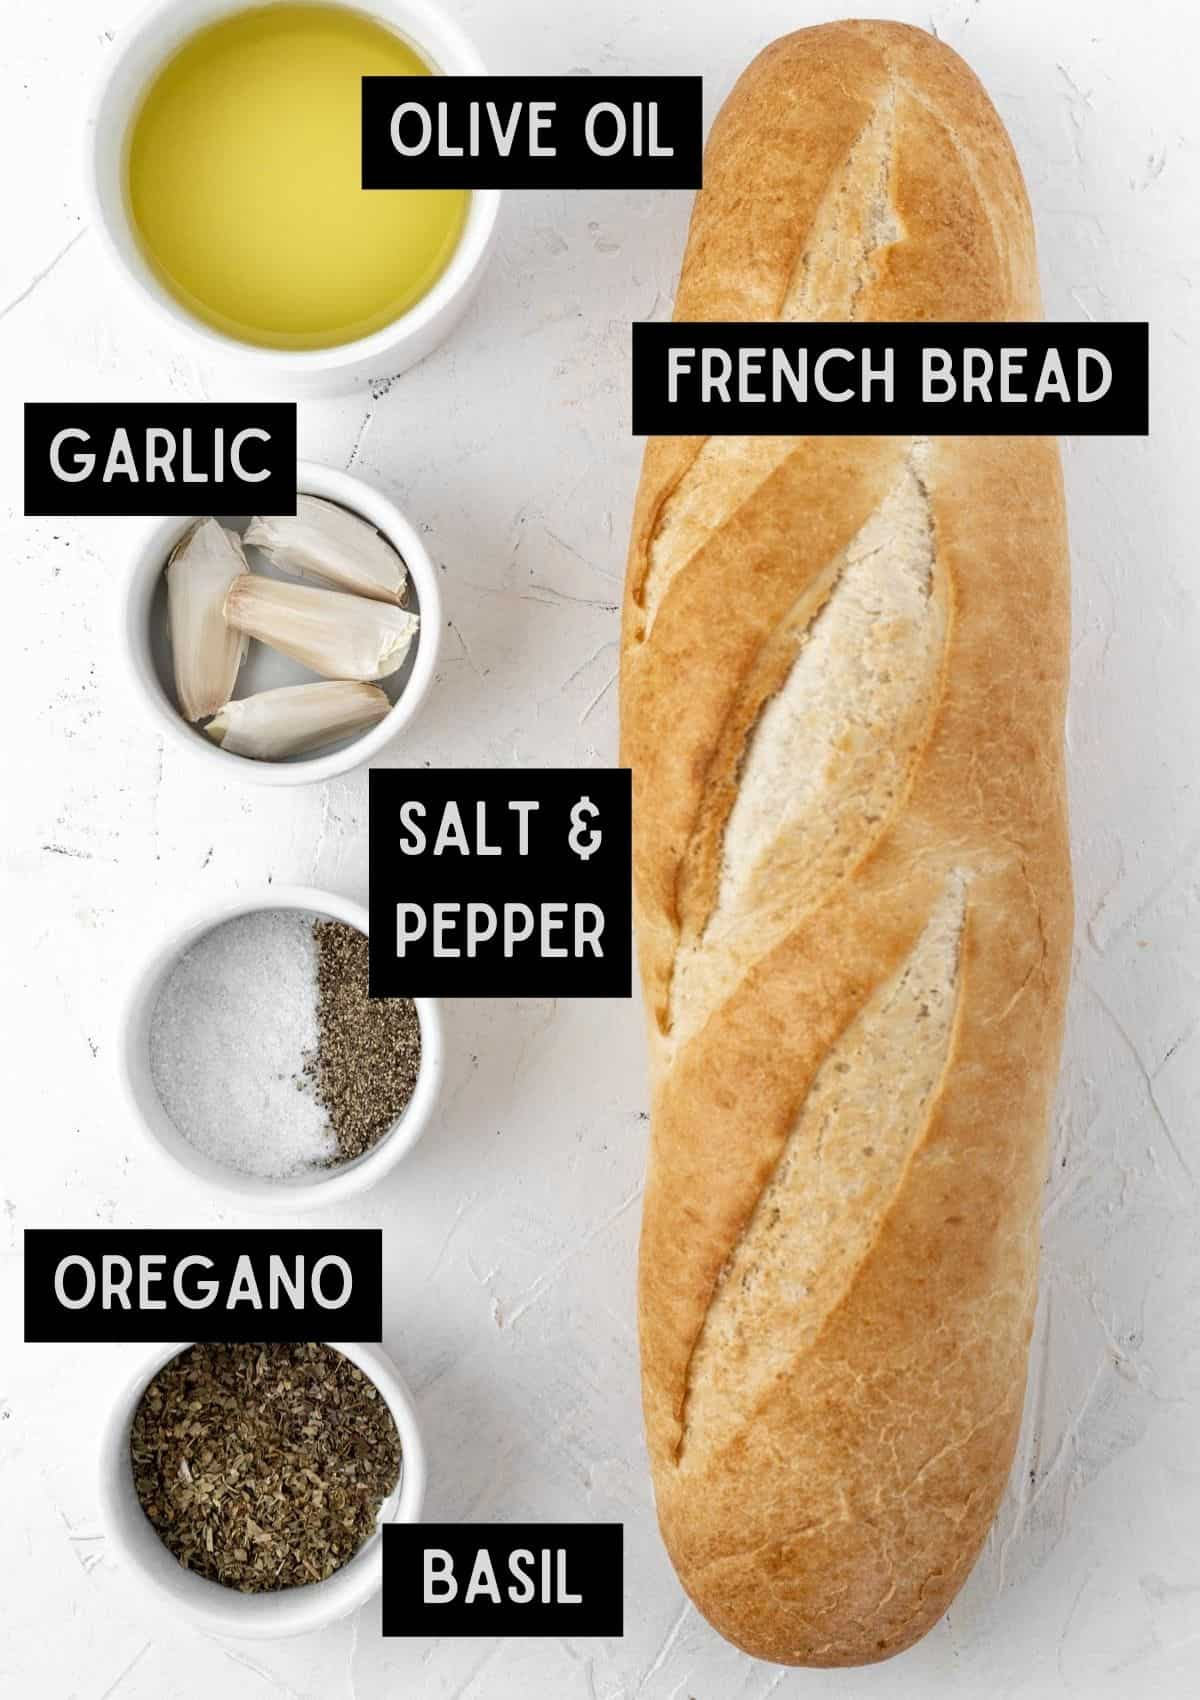 Labelled ingredients for air fryer garlic bread (see recipe for details).